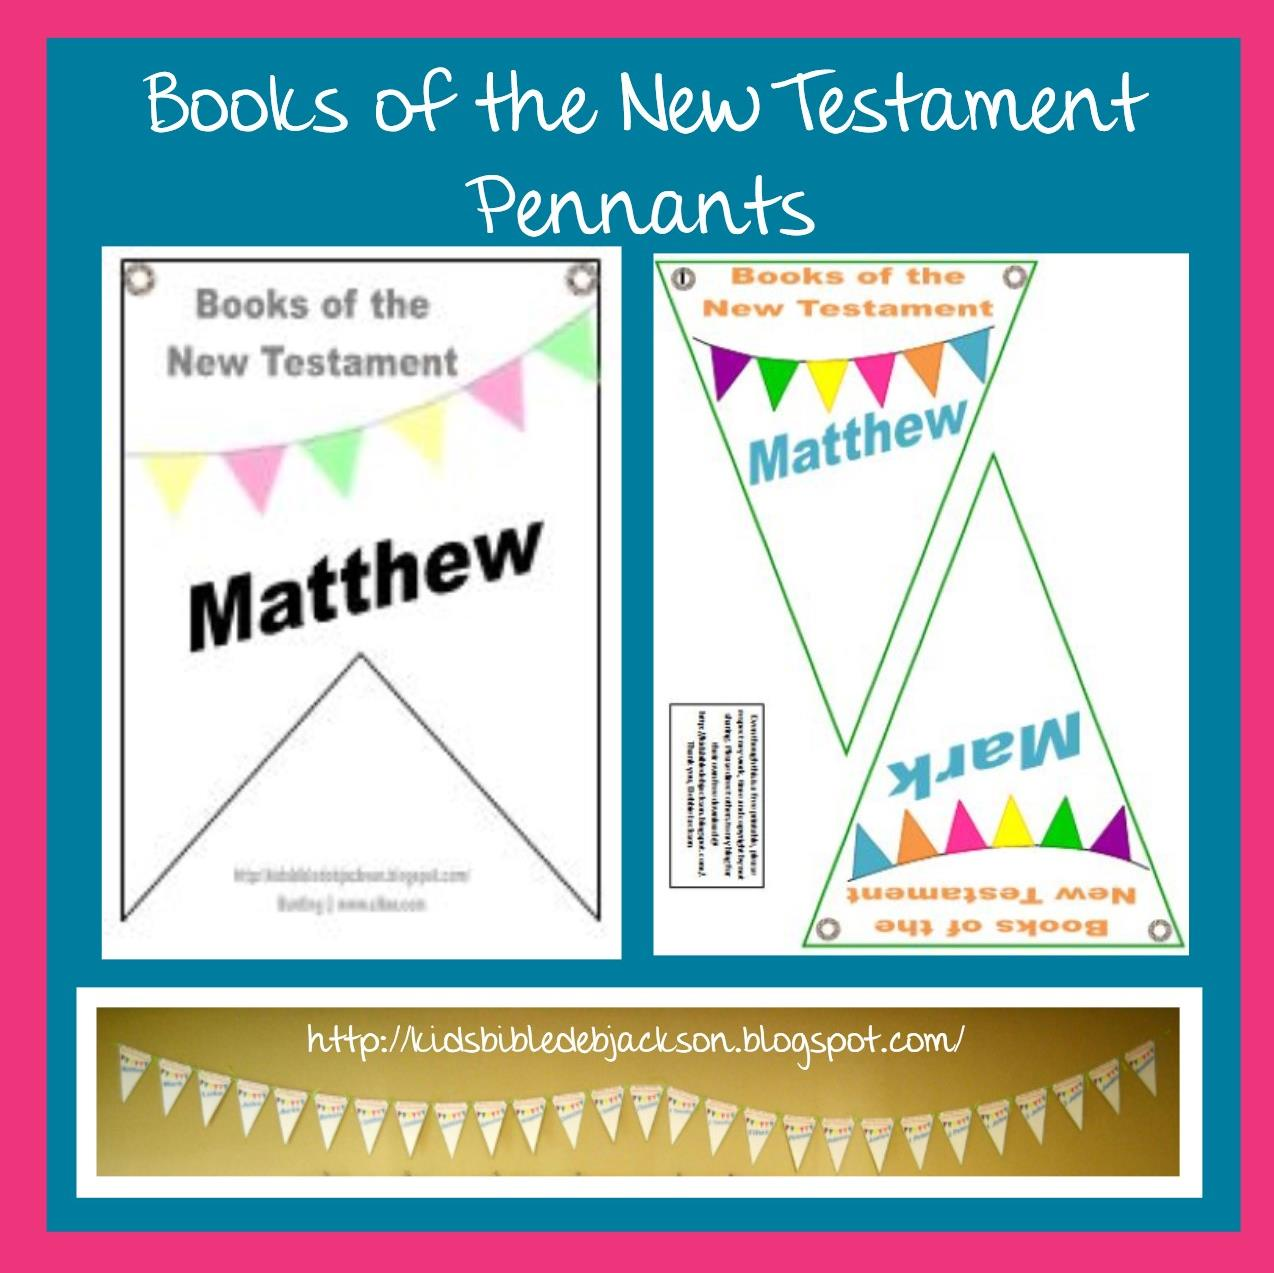 http://kidsbibledebjackson.blogspot.com/2014/05/books-of-new-testament-pennants.html